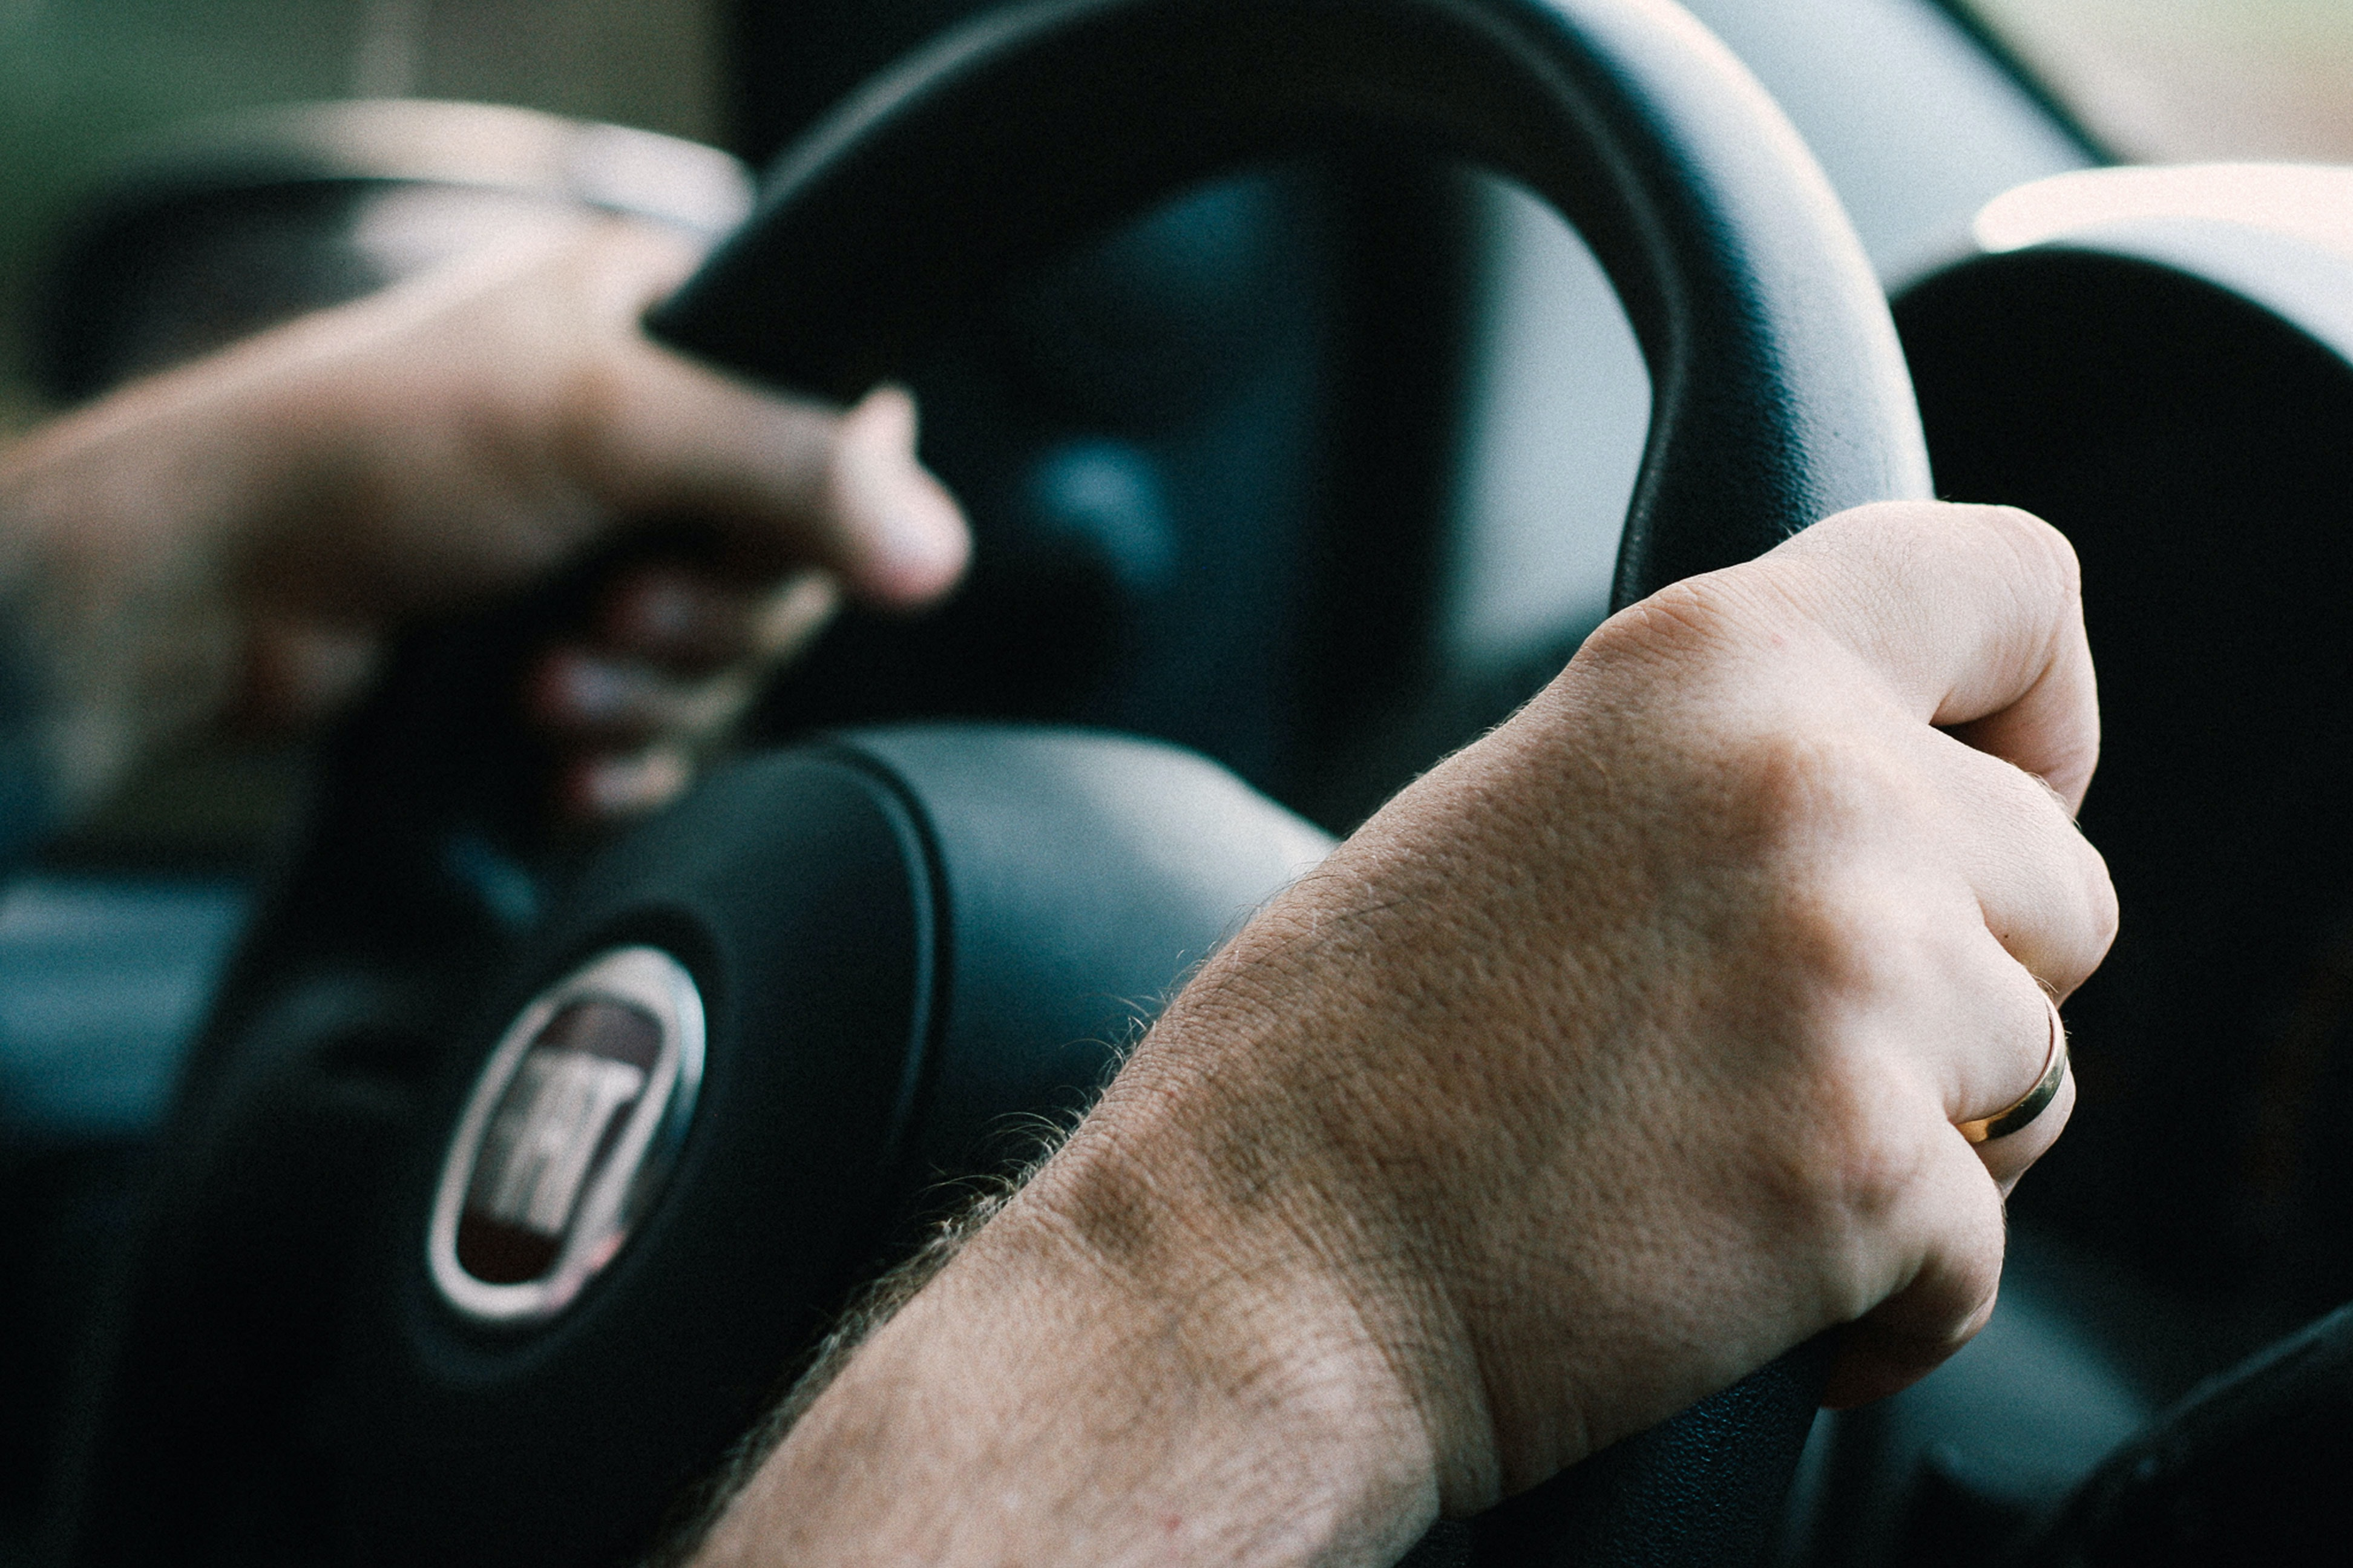 Hands on the steering wheel of a Fiat 500